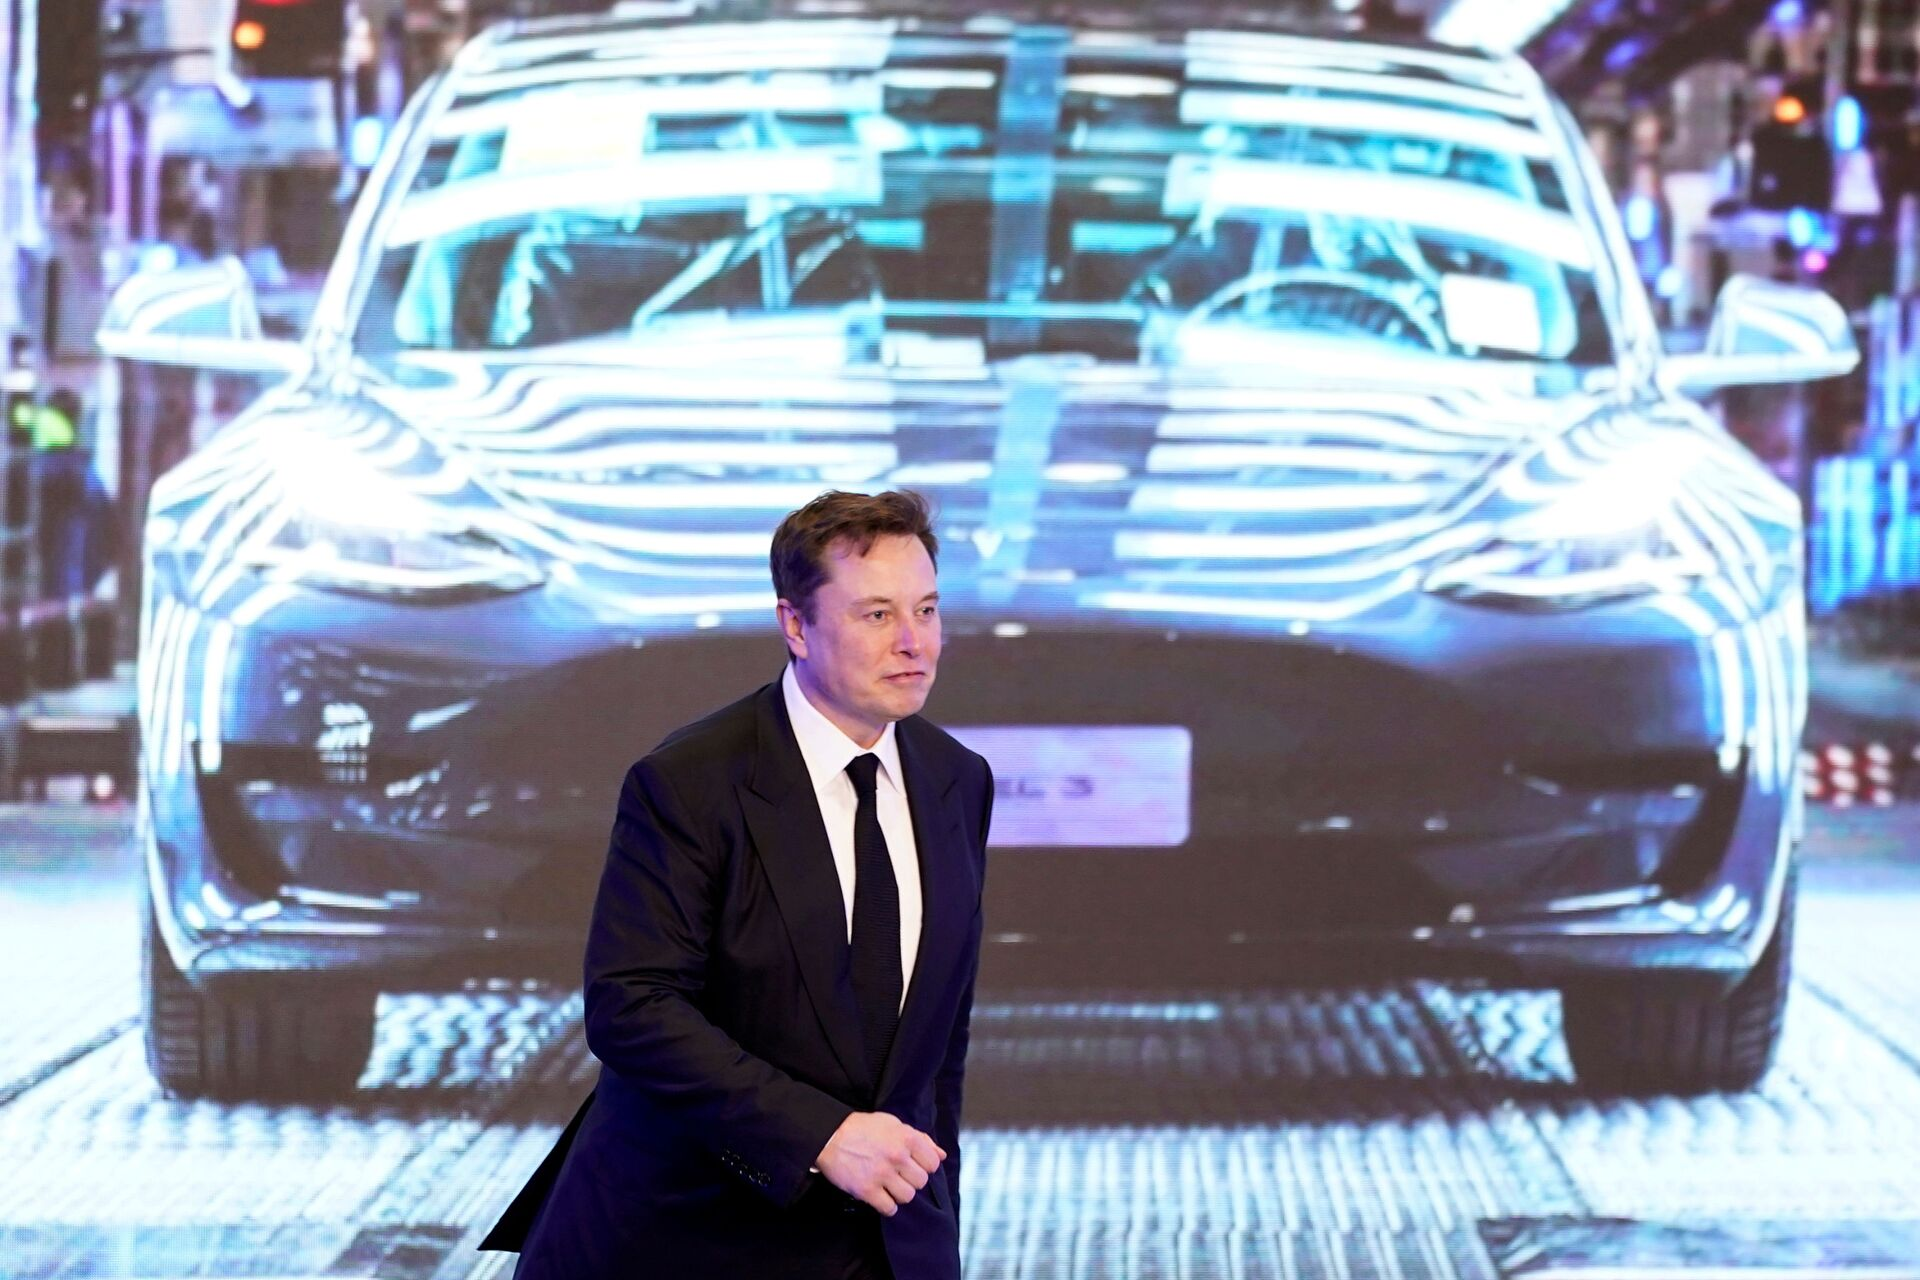 Tesla Inc CEO Elon Musk walks next to a screen showing an image of Tesla Model 3 car during an opening ceremony for Tesla China-made Model Y program in Shanghai, China January 7, 2020. - Sputnik International, 1920, 07.09.2021